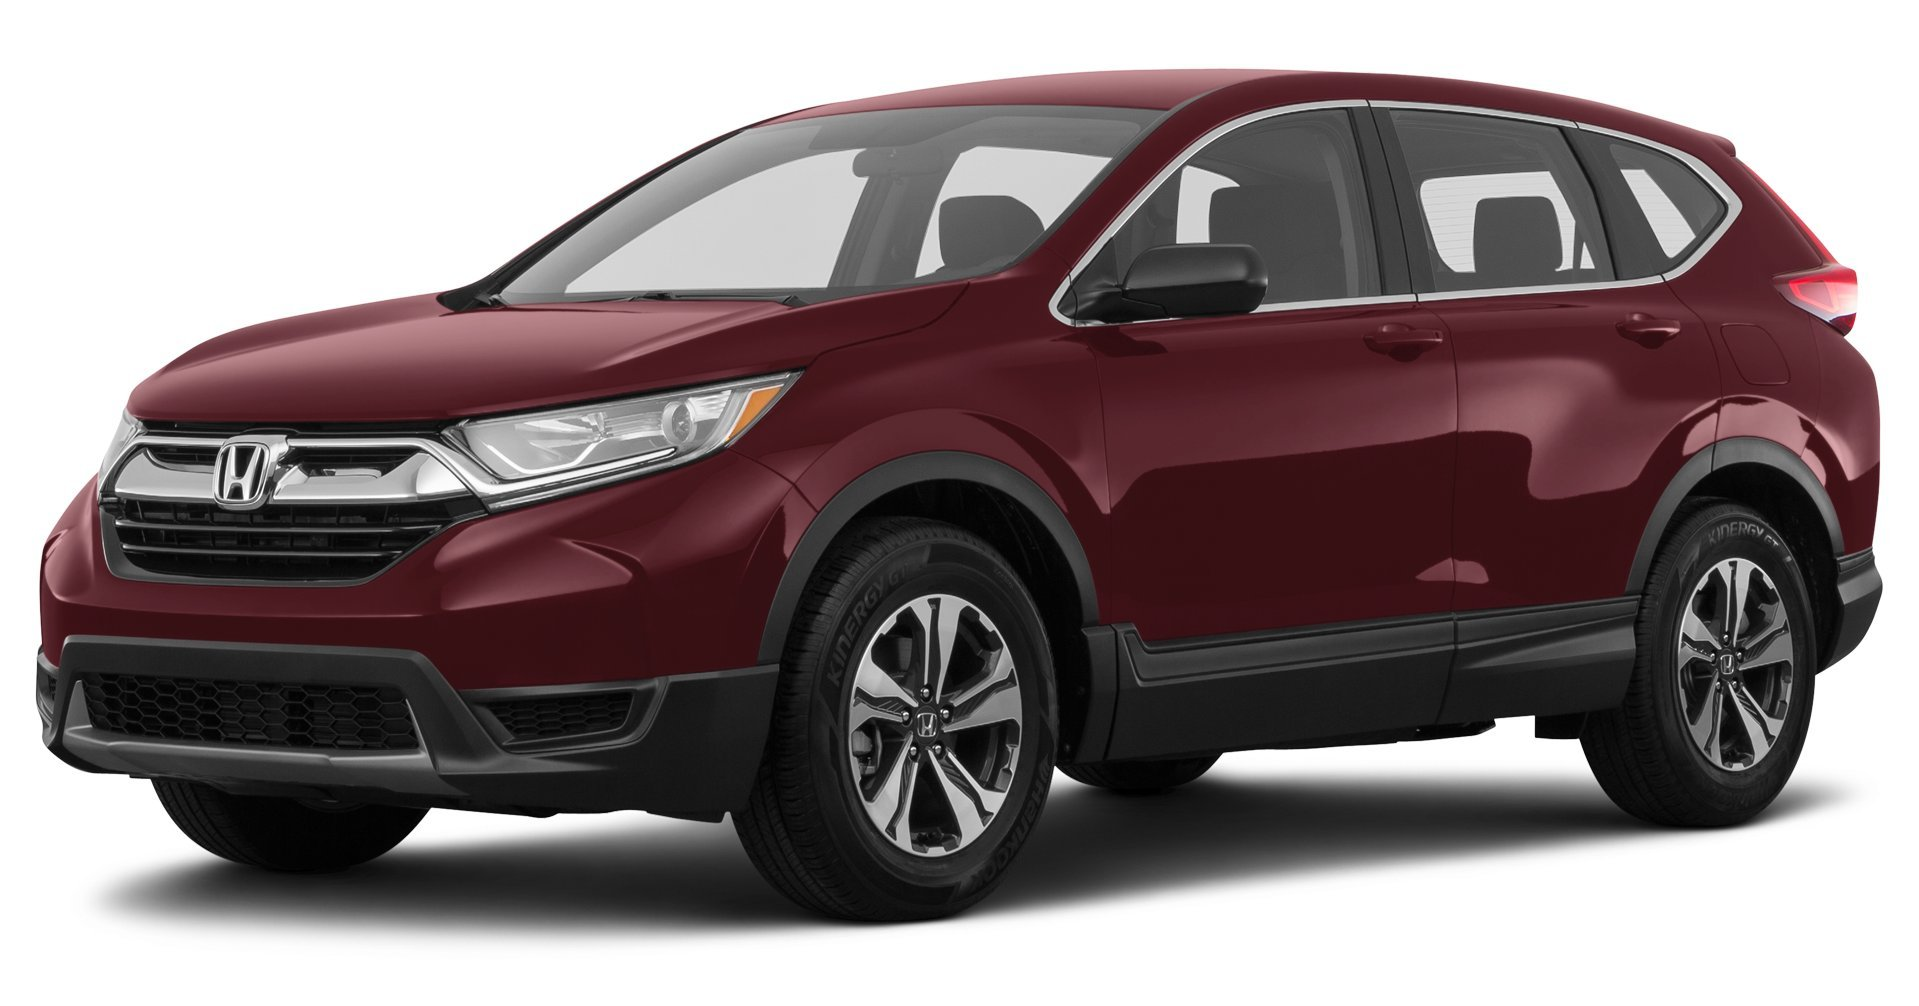 2017 honda cr v reviews images and specs vehicles. Black Bedroom Furniture Sets. Home Design Ideas